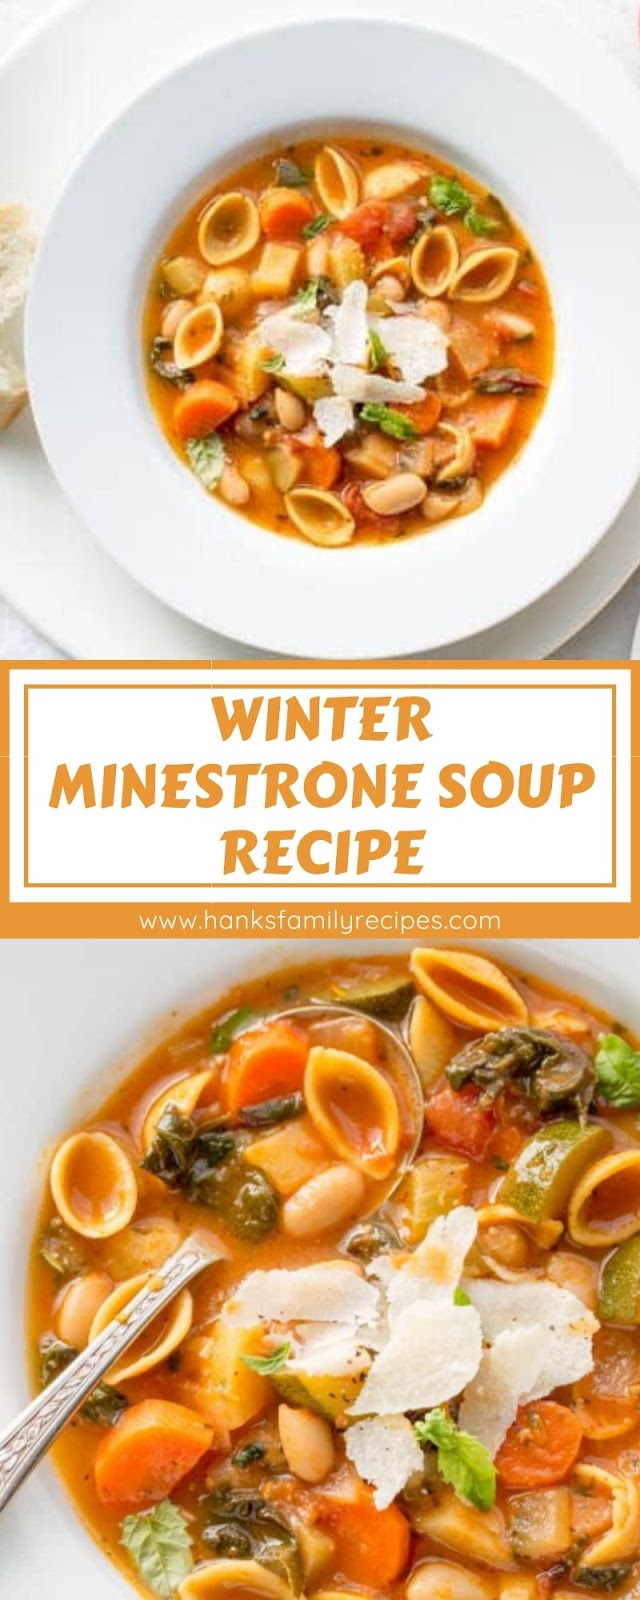 WINTER MINESTRONE SOUP RECIPE